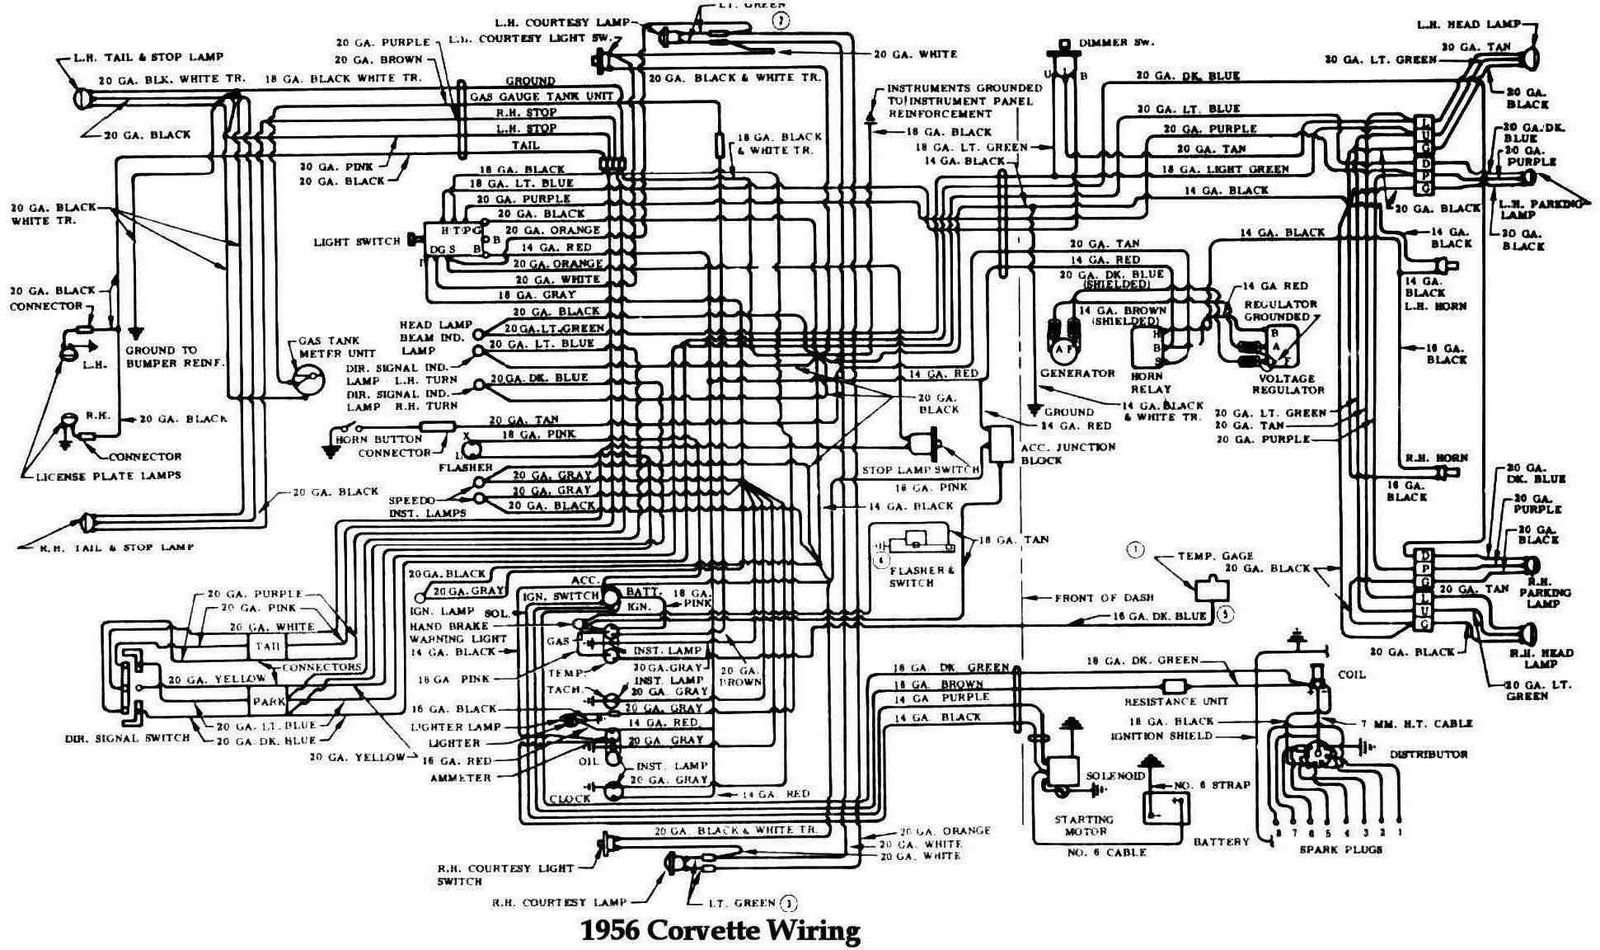 1974 corvette blower motor wiring diagram c3 corvette tail 78 Corvette  Wiring Diagram 1974 Corvette Fuse